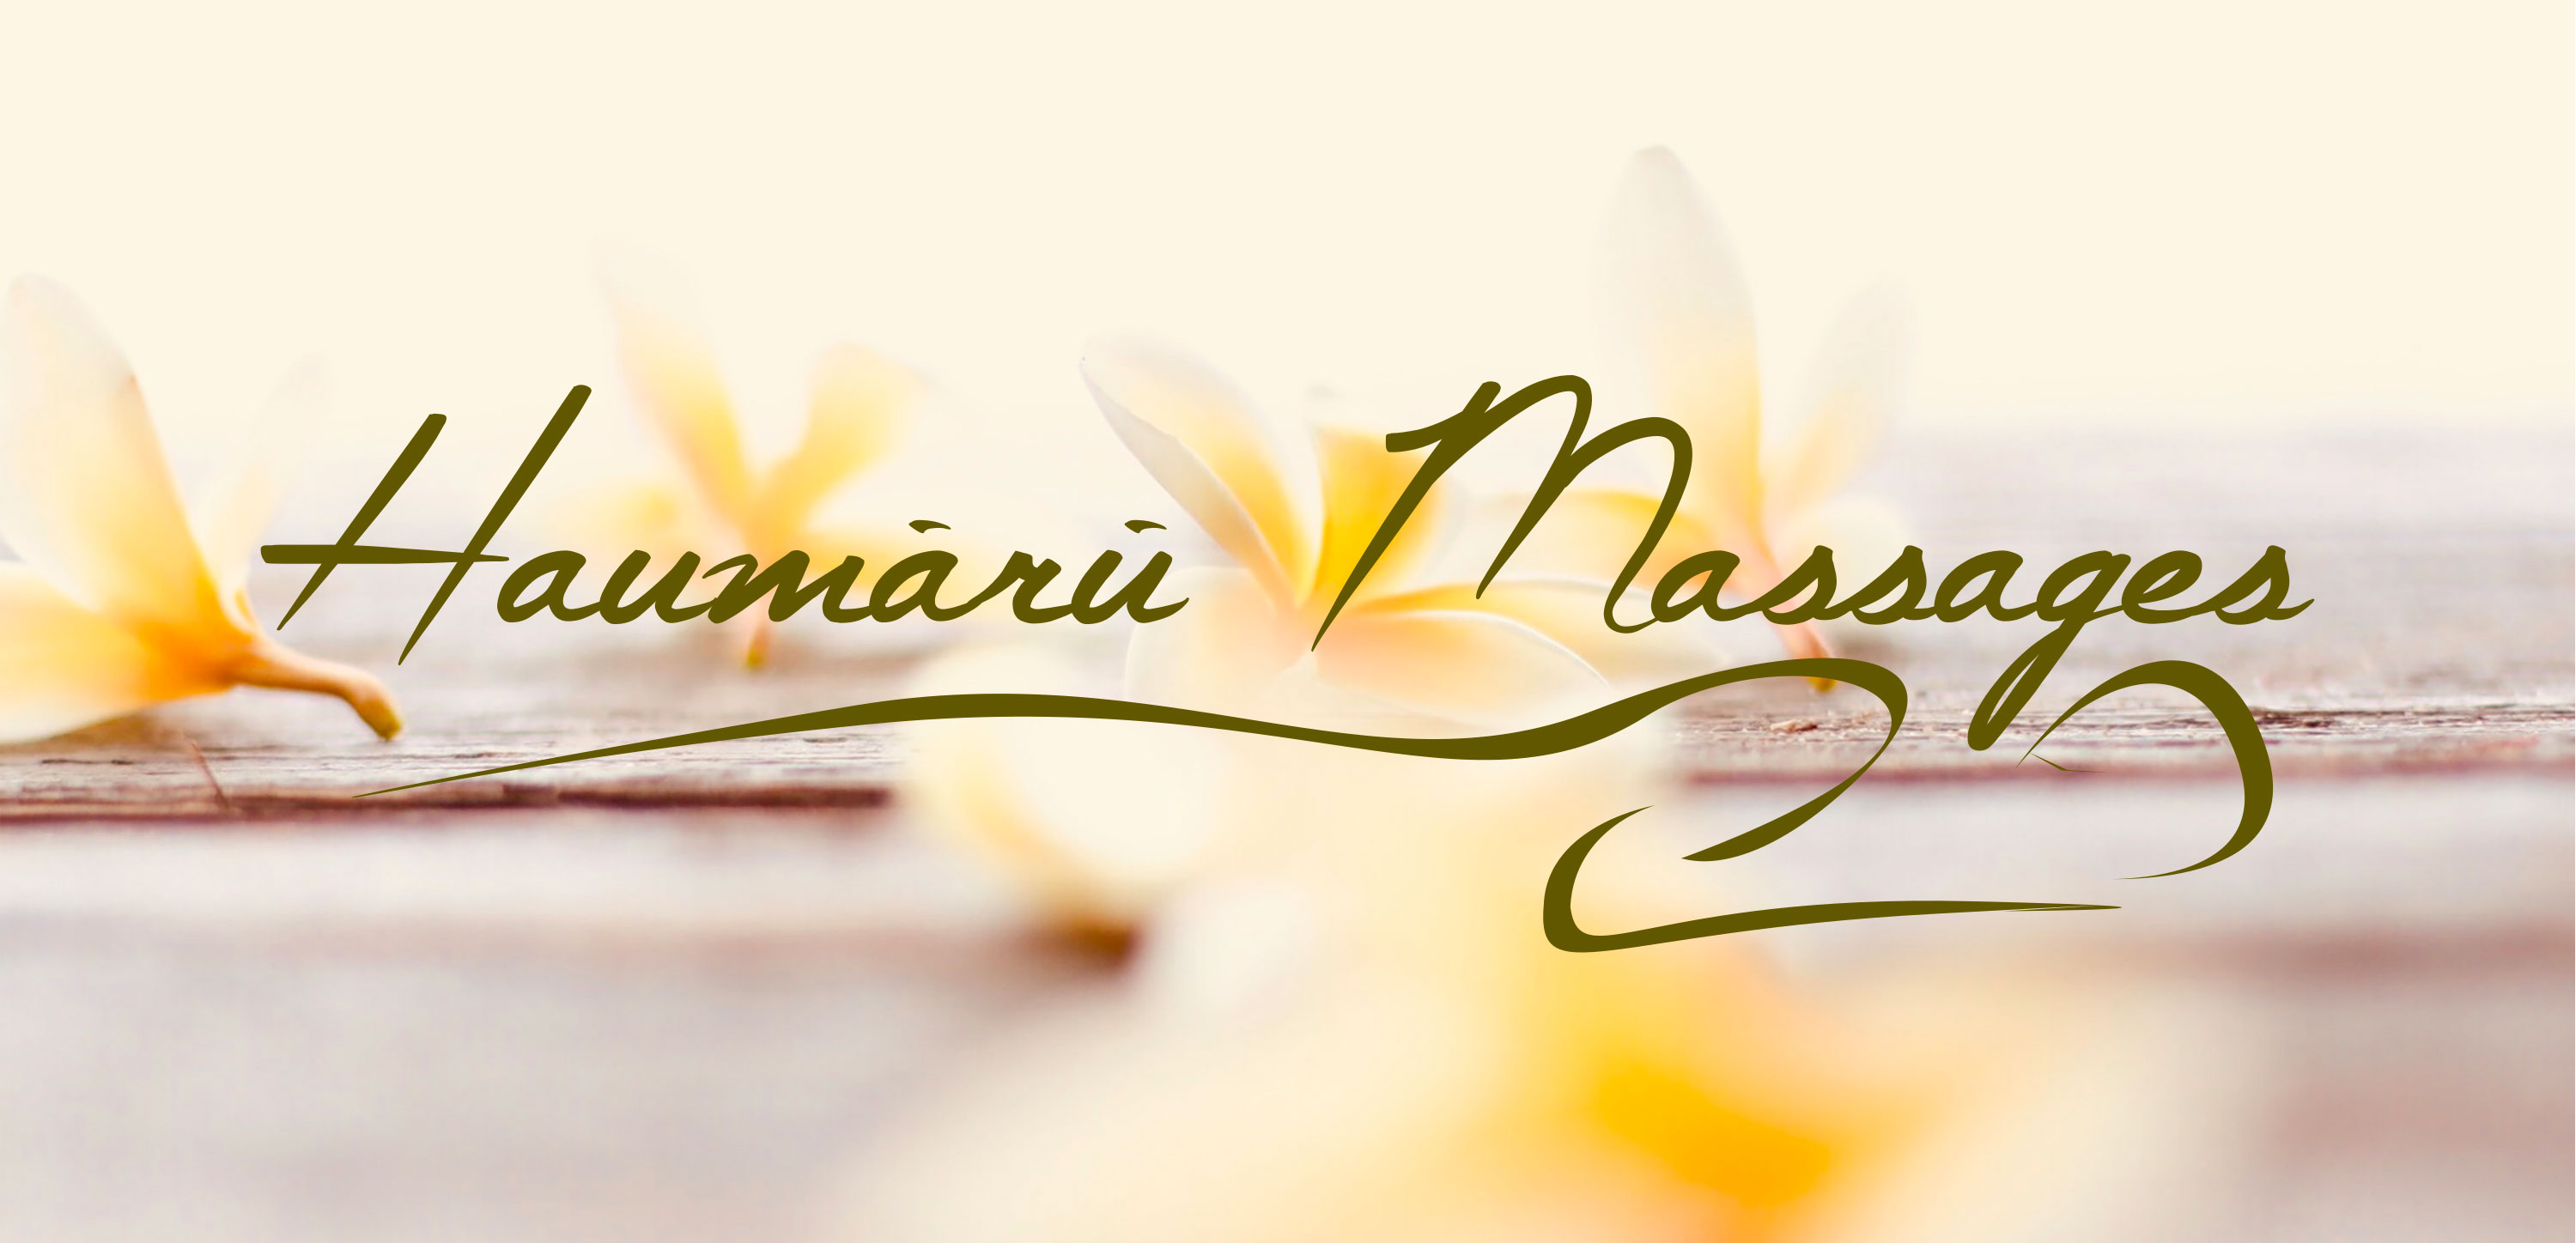 https://tahititourisme.mx/wp-content/uploads/2019/09/HAUMARU-MASSAGE-1140x550.jpg